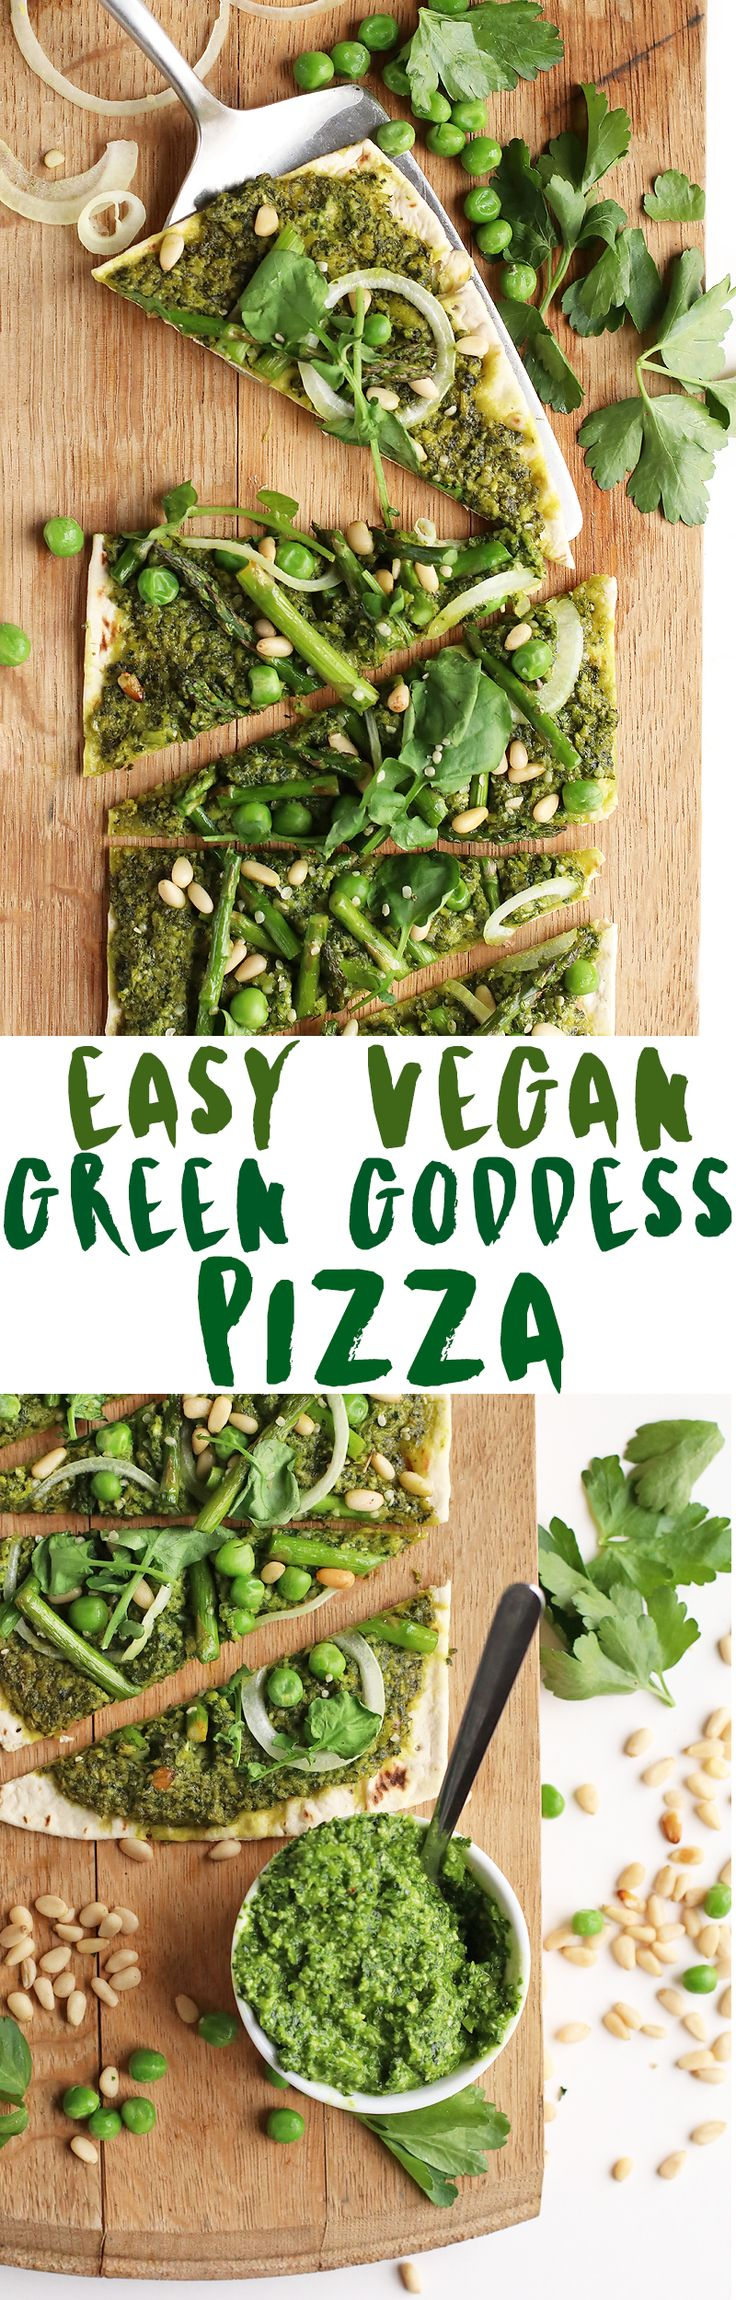 Lighten up with this vegan Green Goddess Pizza, with Kale Pesto, seasonal vegetables, and @flatoutbread Pizza Crust for a healthy and delicious springtime meal.